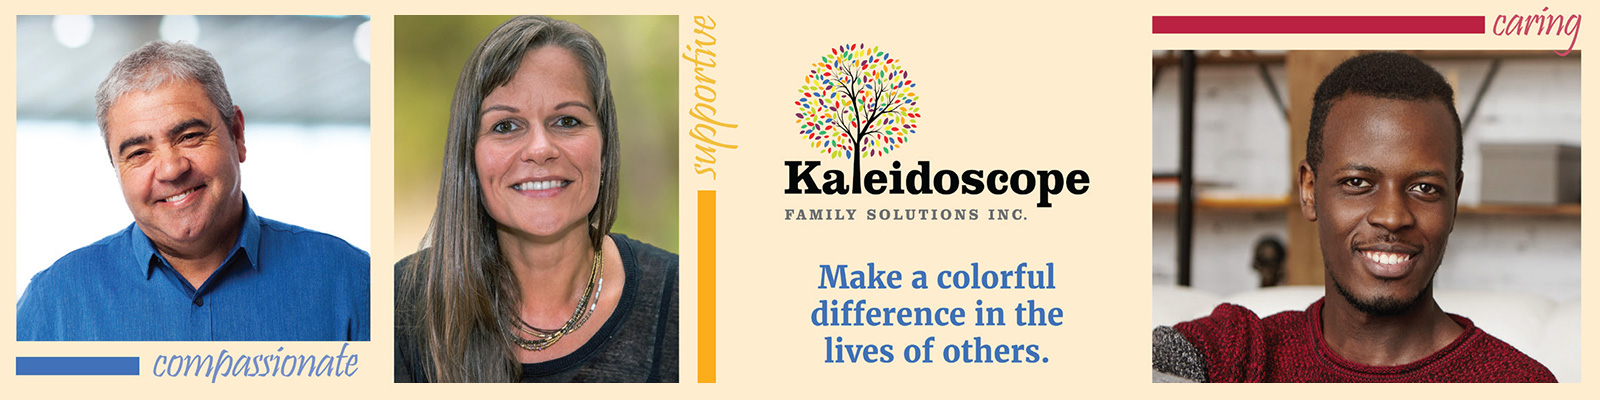 Kaleidoscope Family Solutions Inc - Direct Support Professional banner image